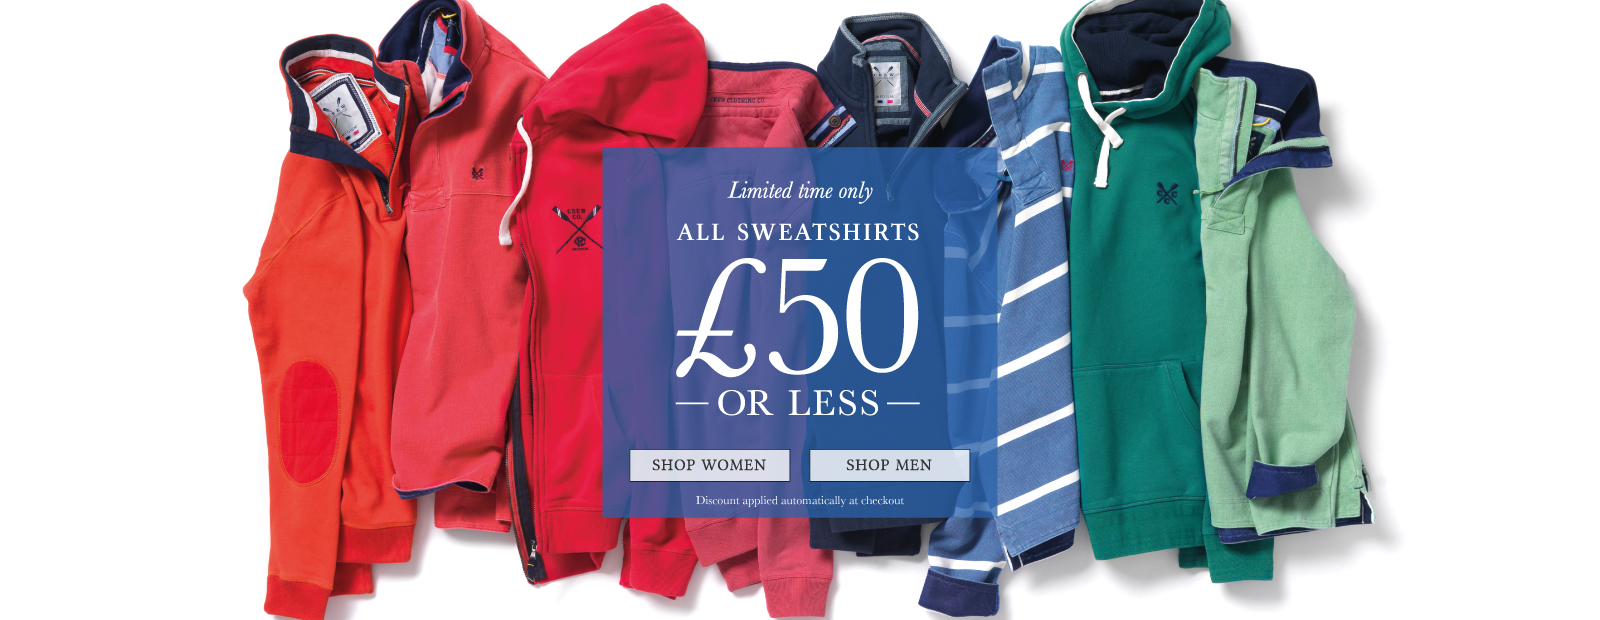 Limited time offer - Sweats £50 or less